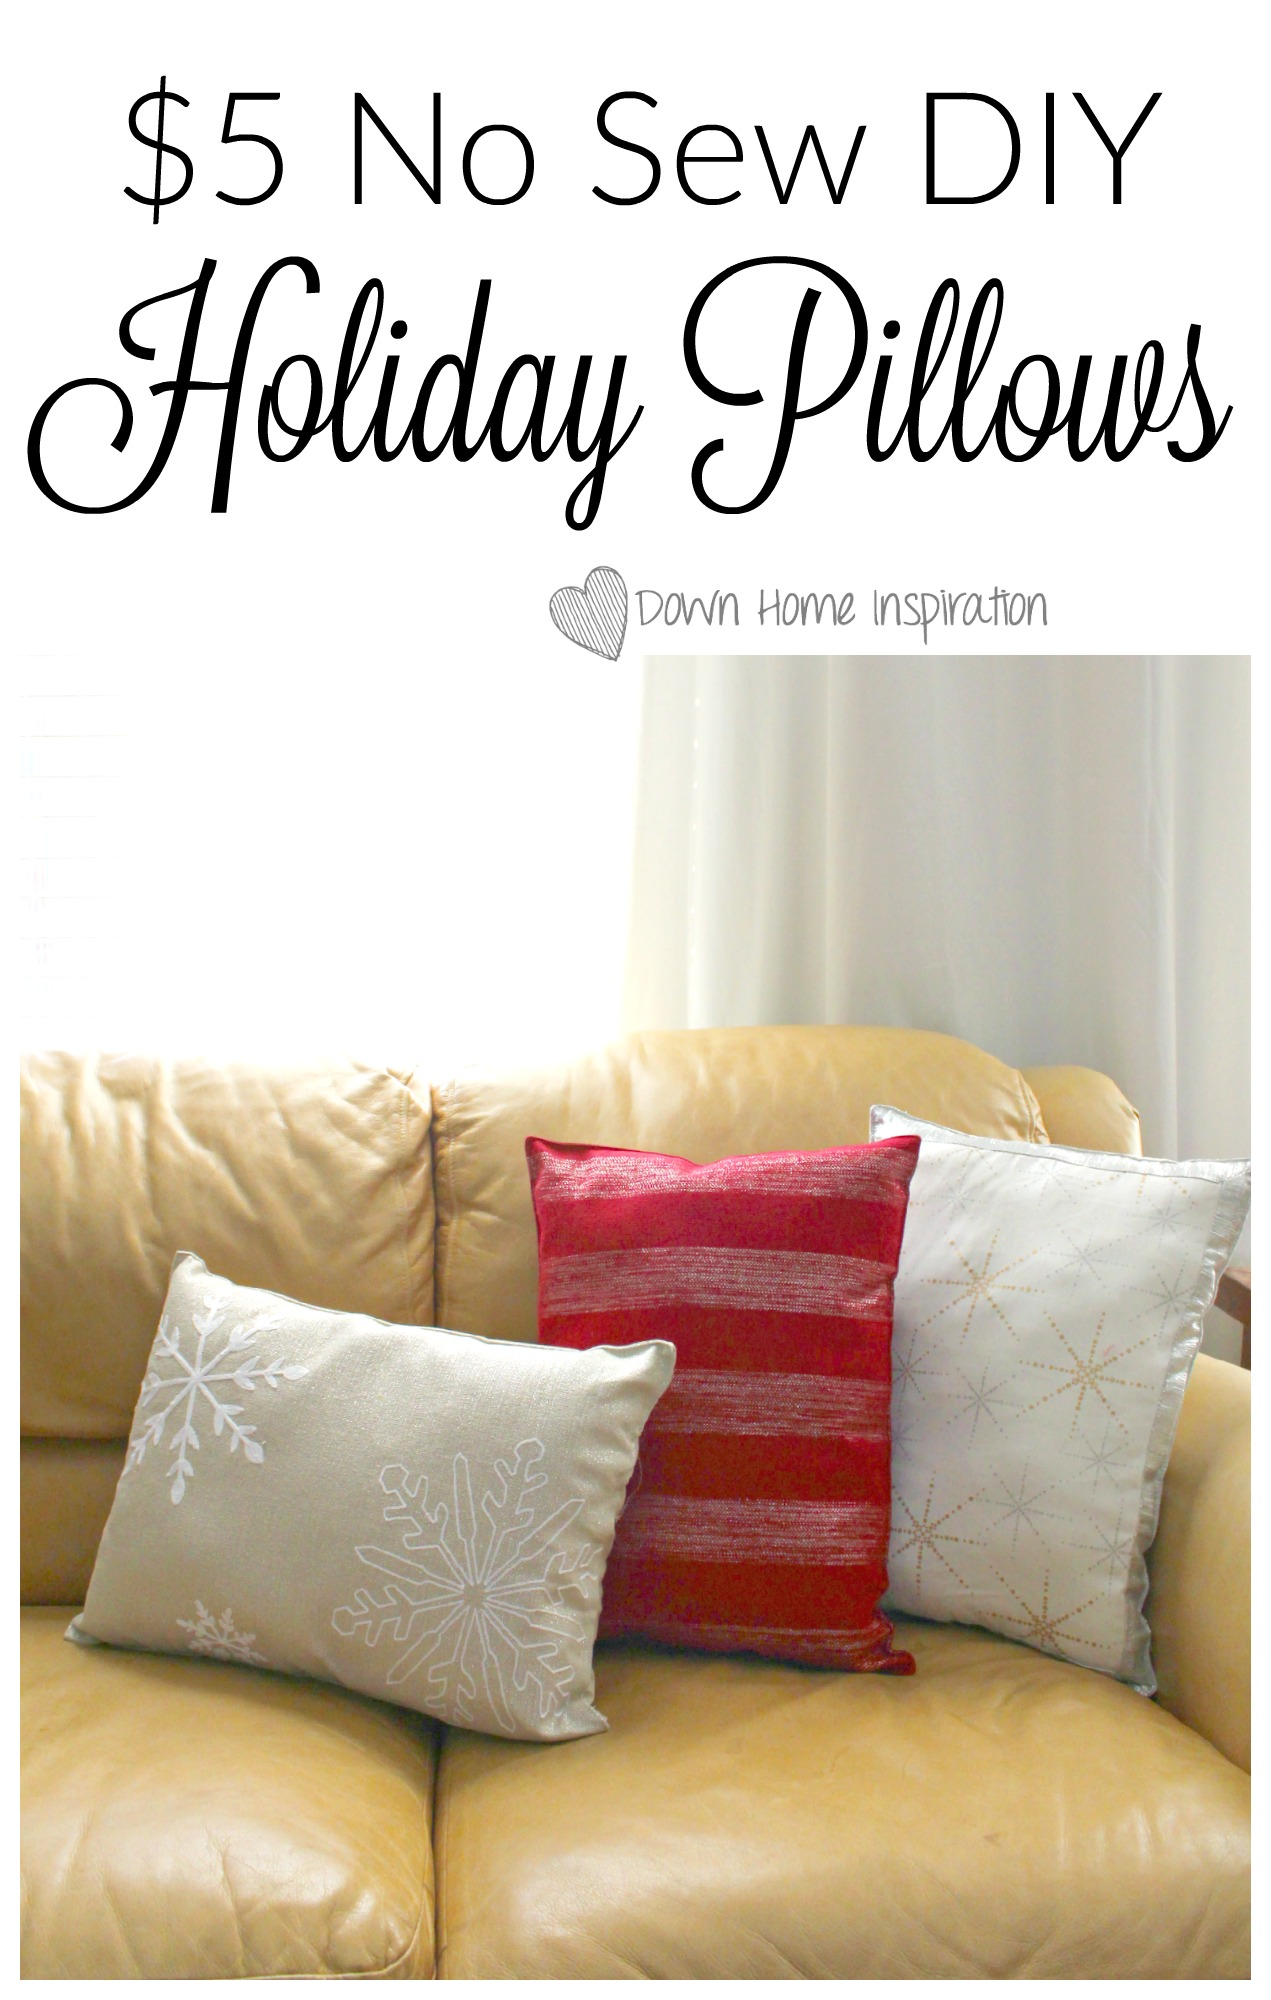 5 No Sew DIY Holiday Pillows Down Home Inspiration